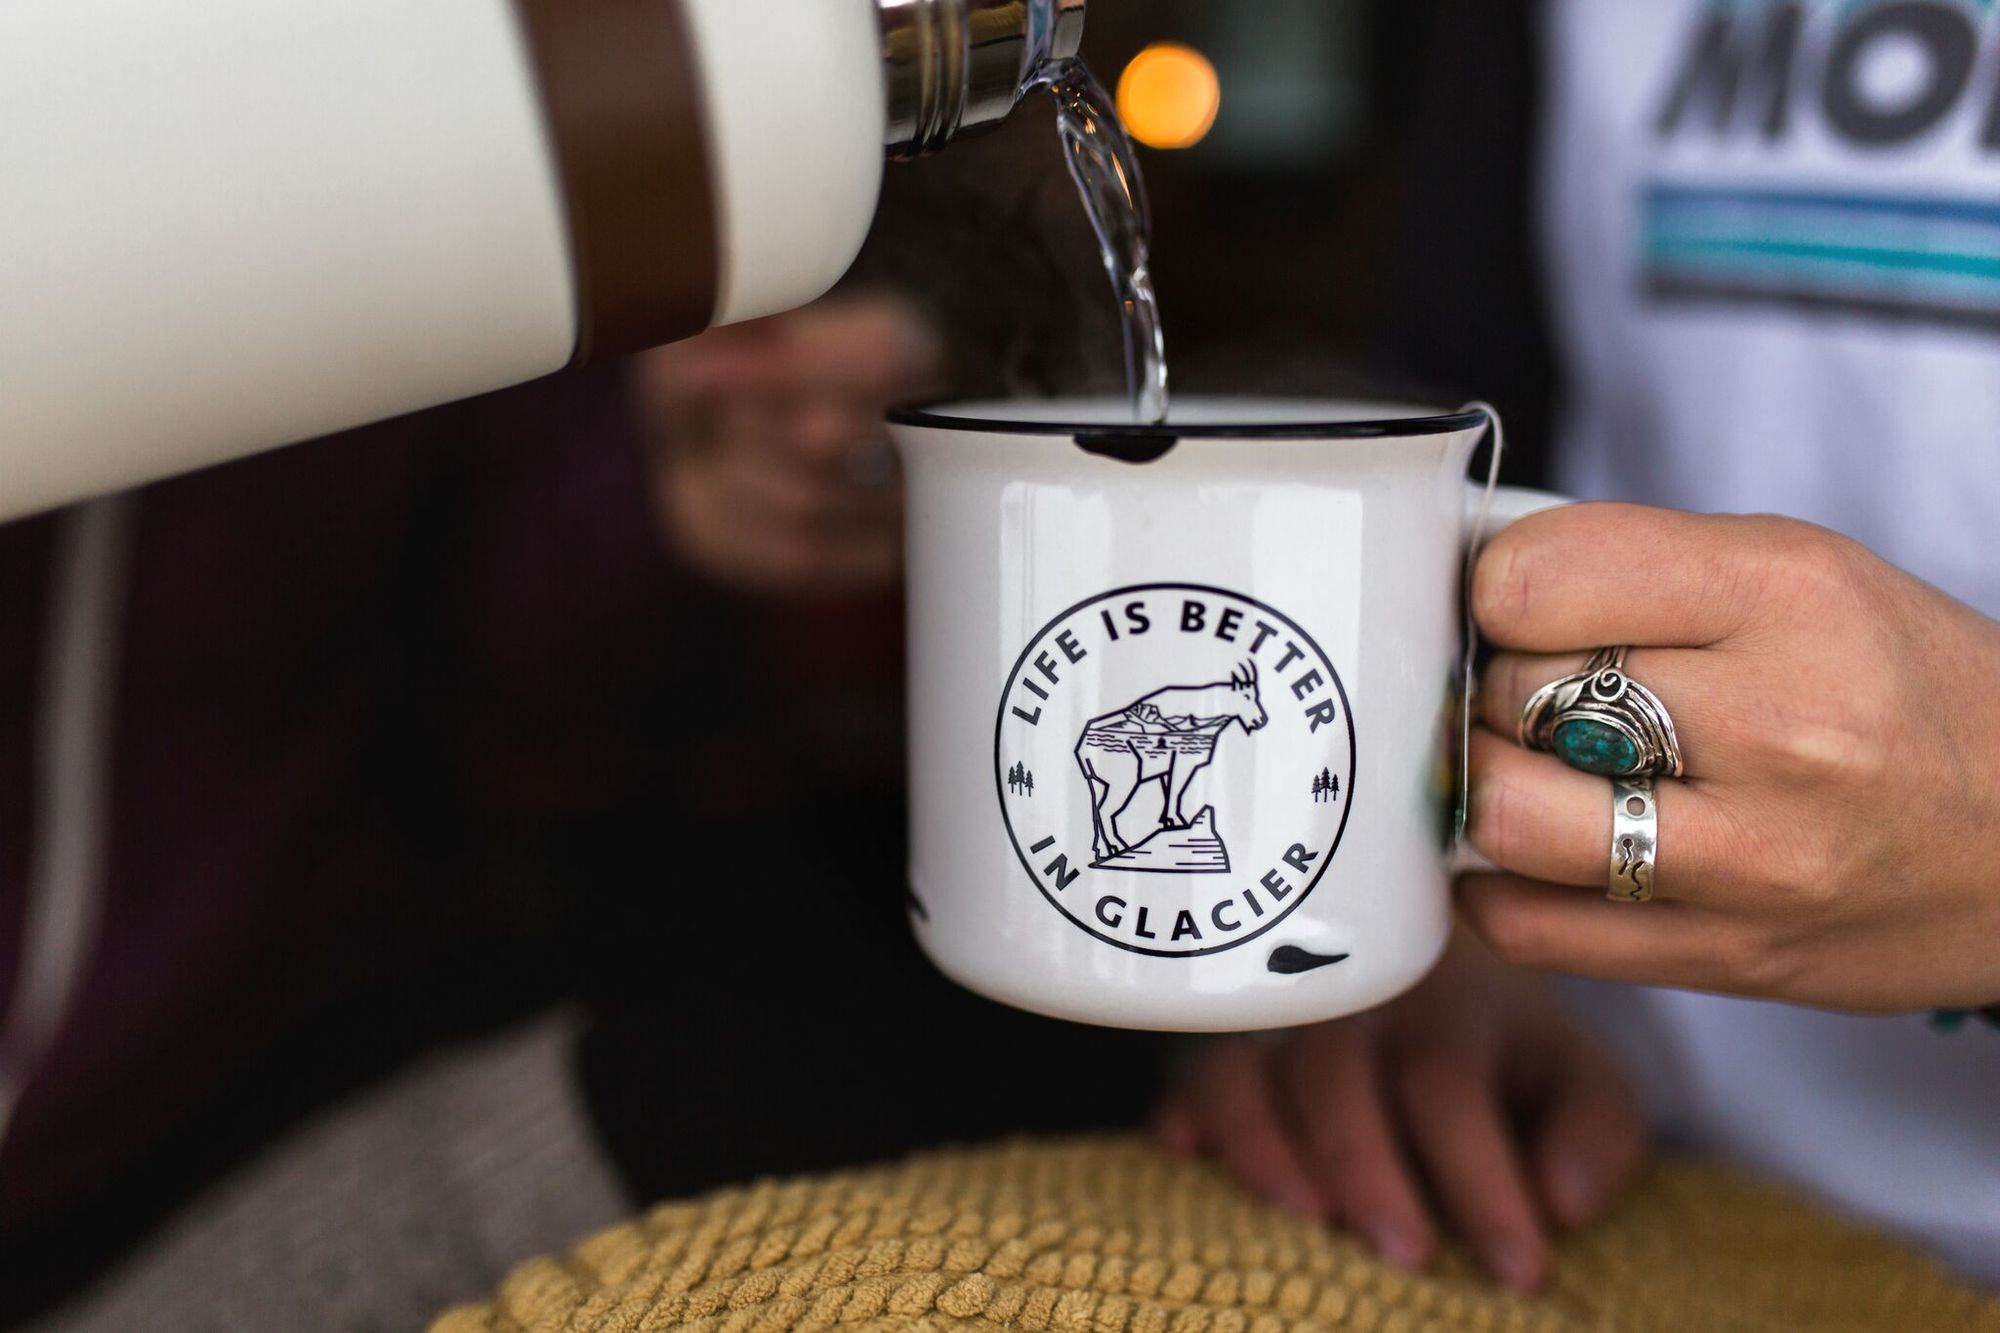 Life is Better in Glacier Mug from The Montana Scene | Montana Laura Blog | J. Vigil Photography